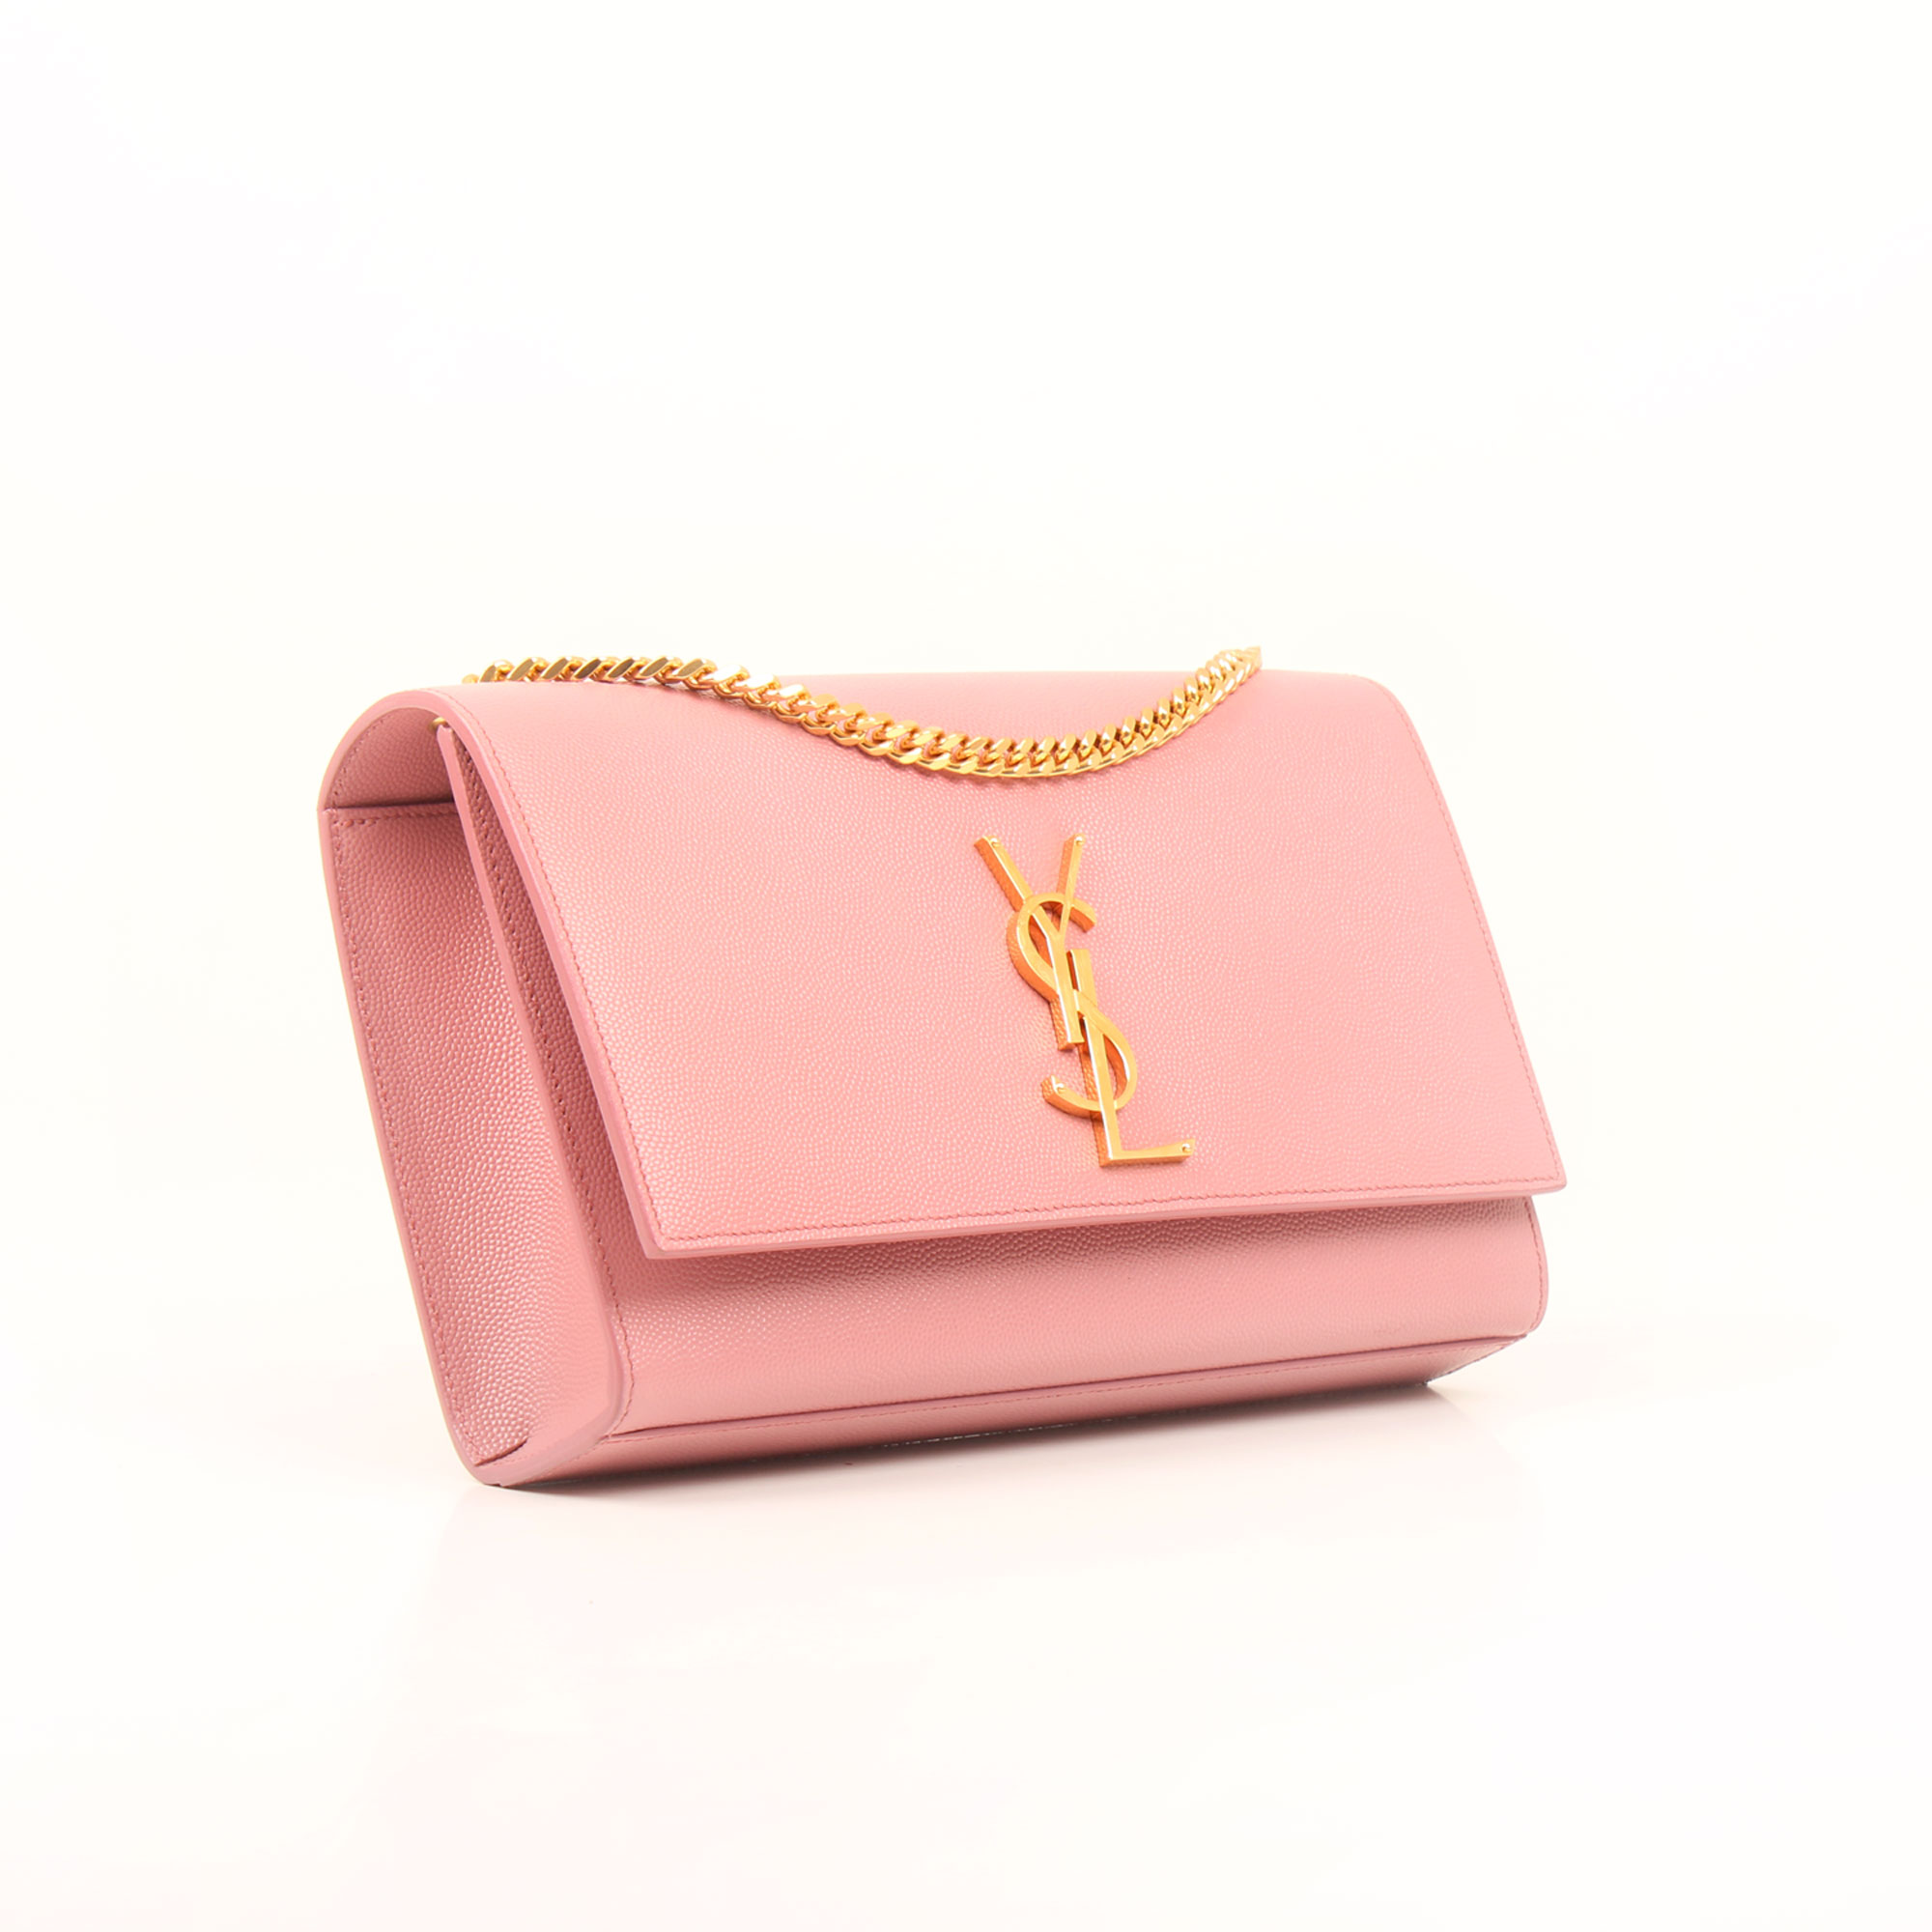 Imagen general del bolso ysl monogram medium rosa fleur